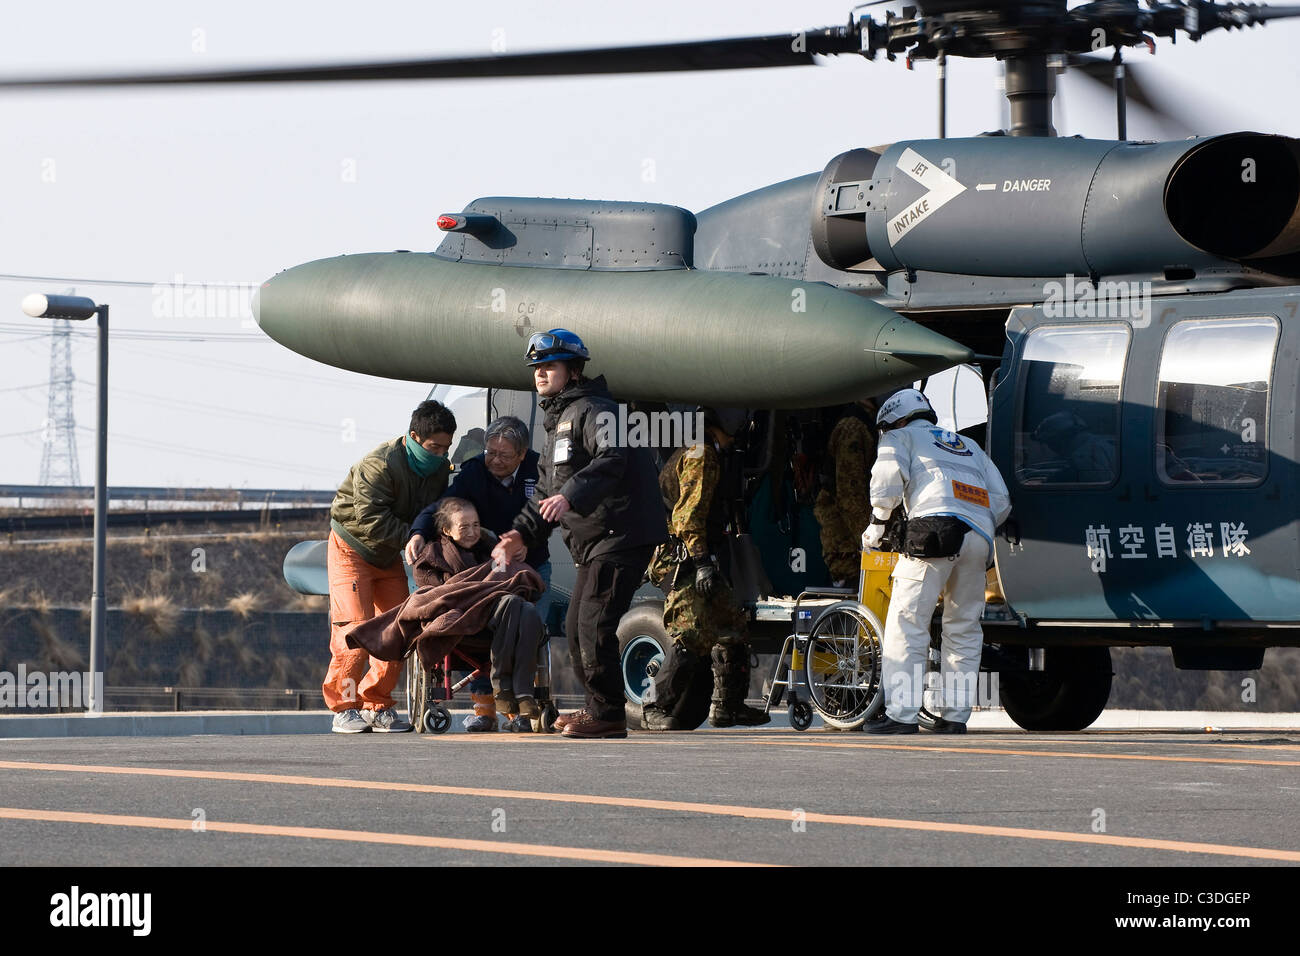 An elderly woman is helped off a helicopter after being evacuated from her home to a hospital in Ishinomaki, Japan - Stock Image